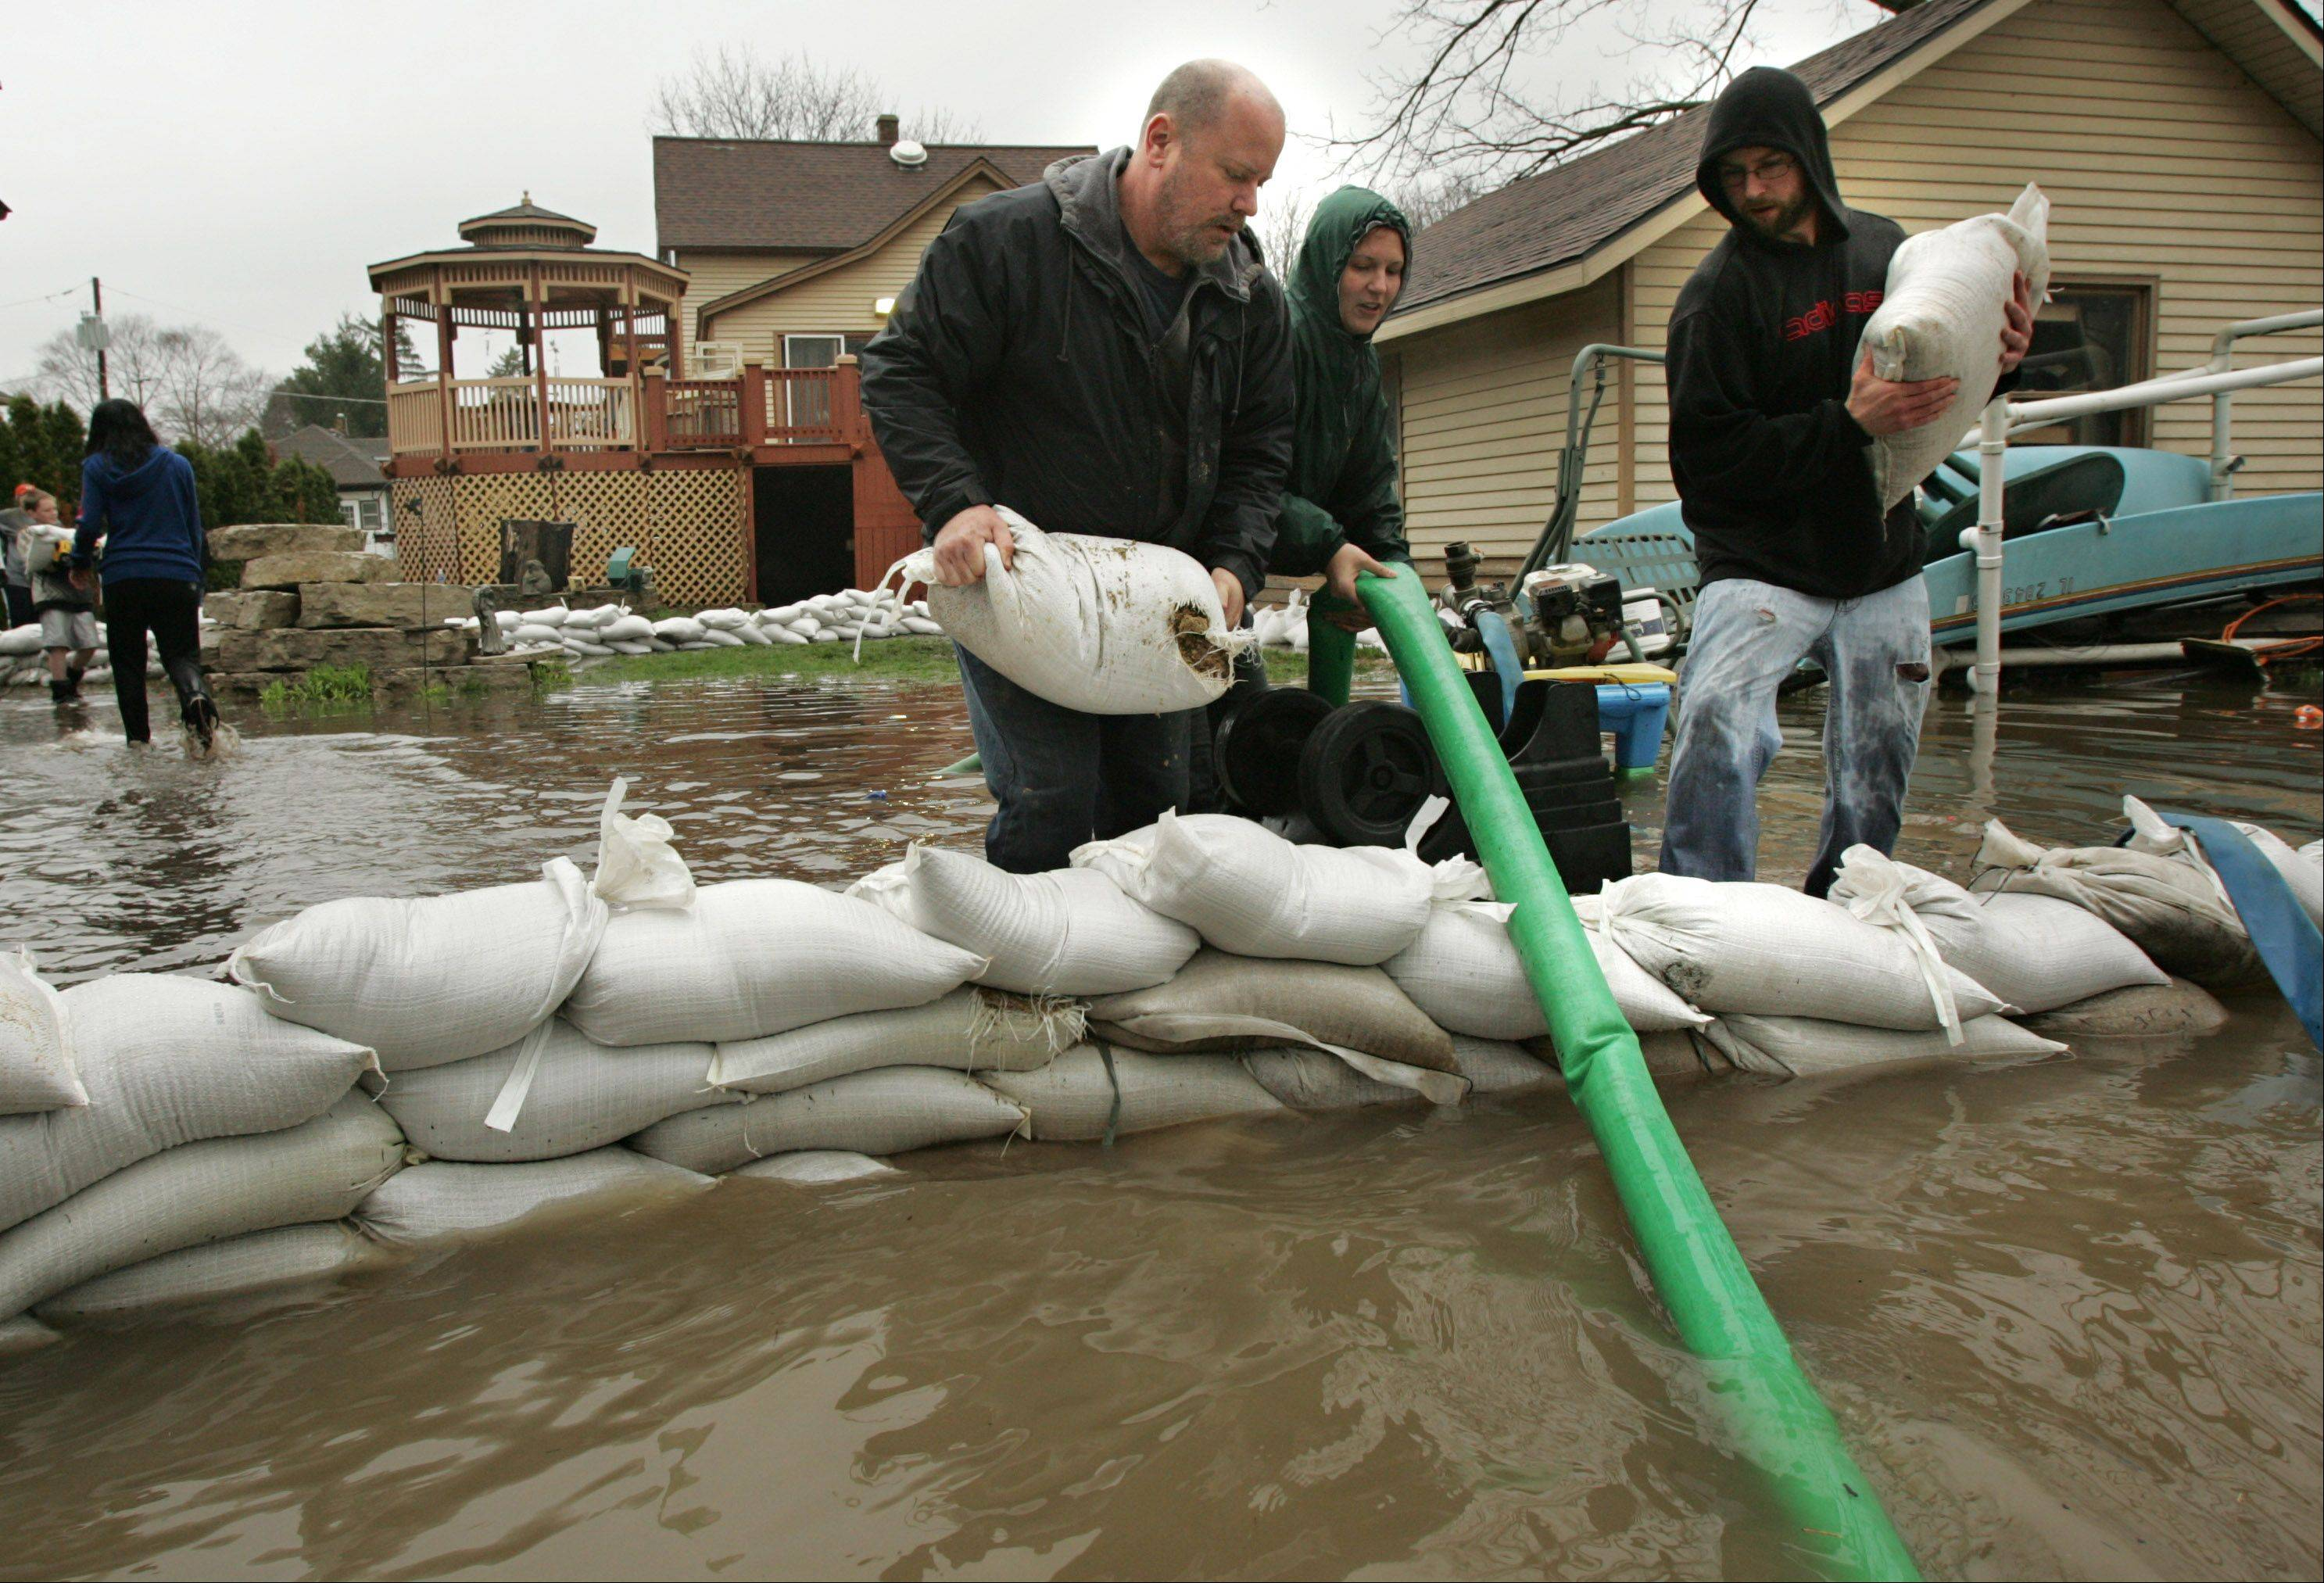 Algonquin resident Greg Stone, left, gets some help sandbagging his father-in-law's backyard along the Fox River from his wife Courtney, center, and Lake in the Hills resident Eric Johnson. Johnson was nearby taking pictures at Towne Park and offered to help the nearby residents trying to protect their homes.